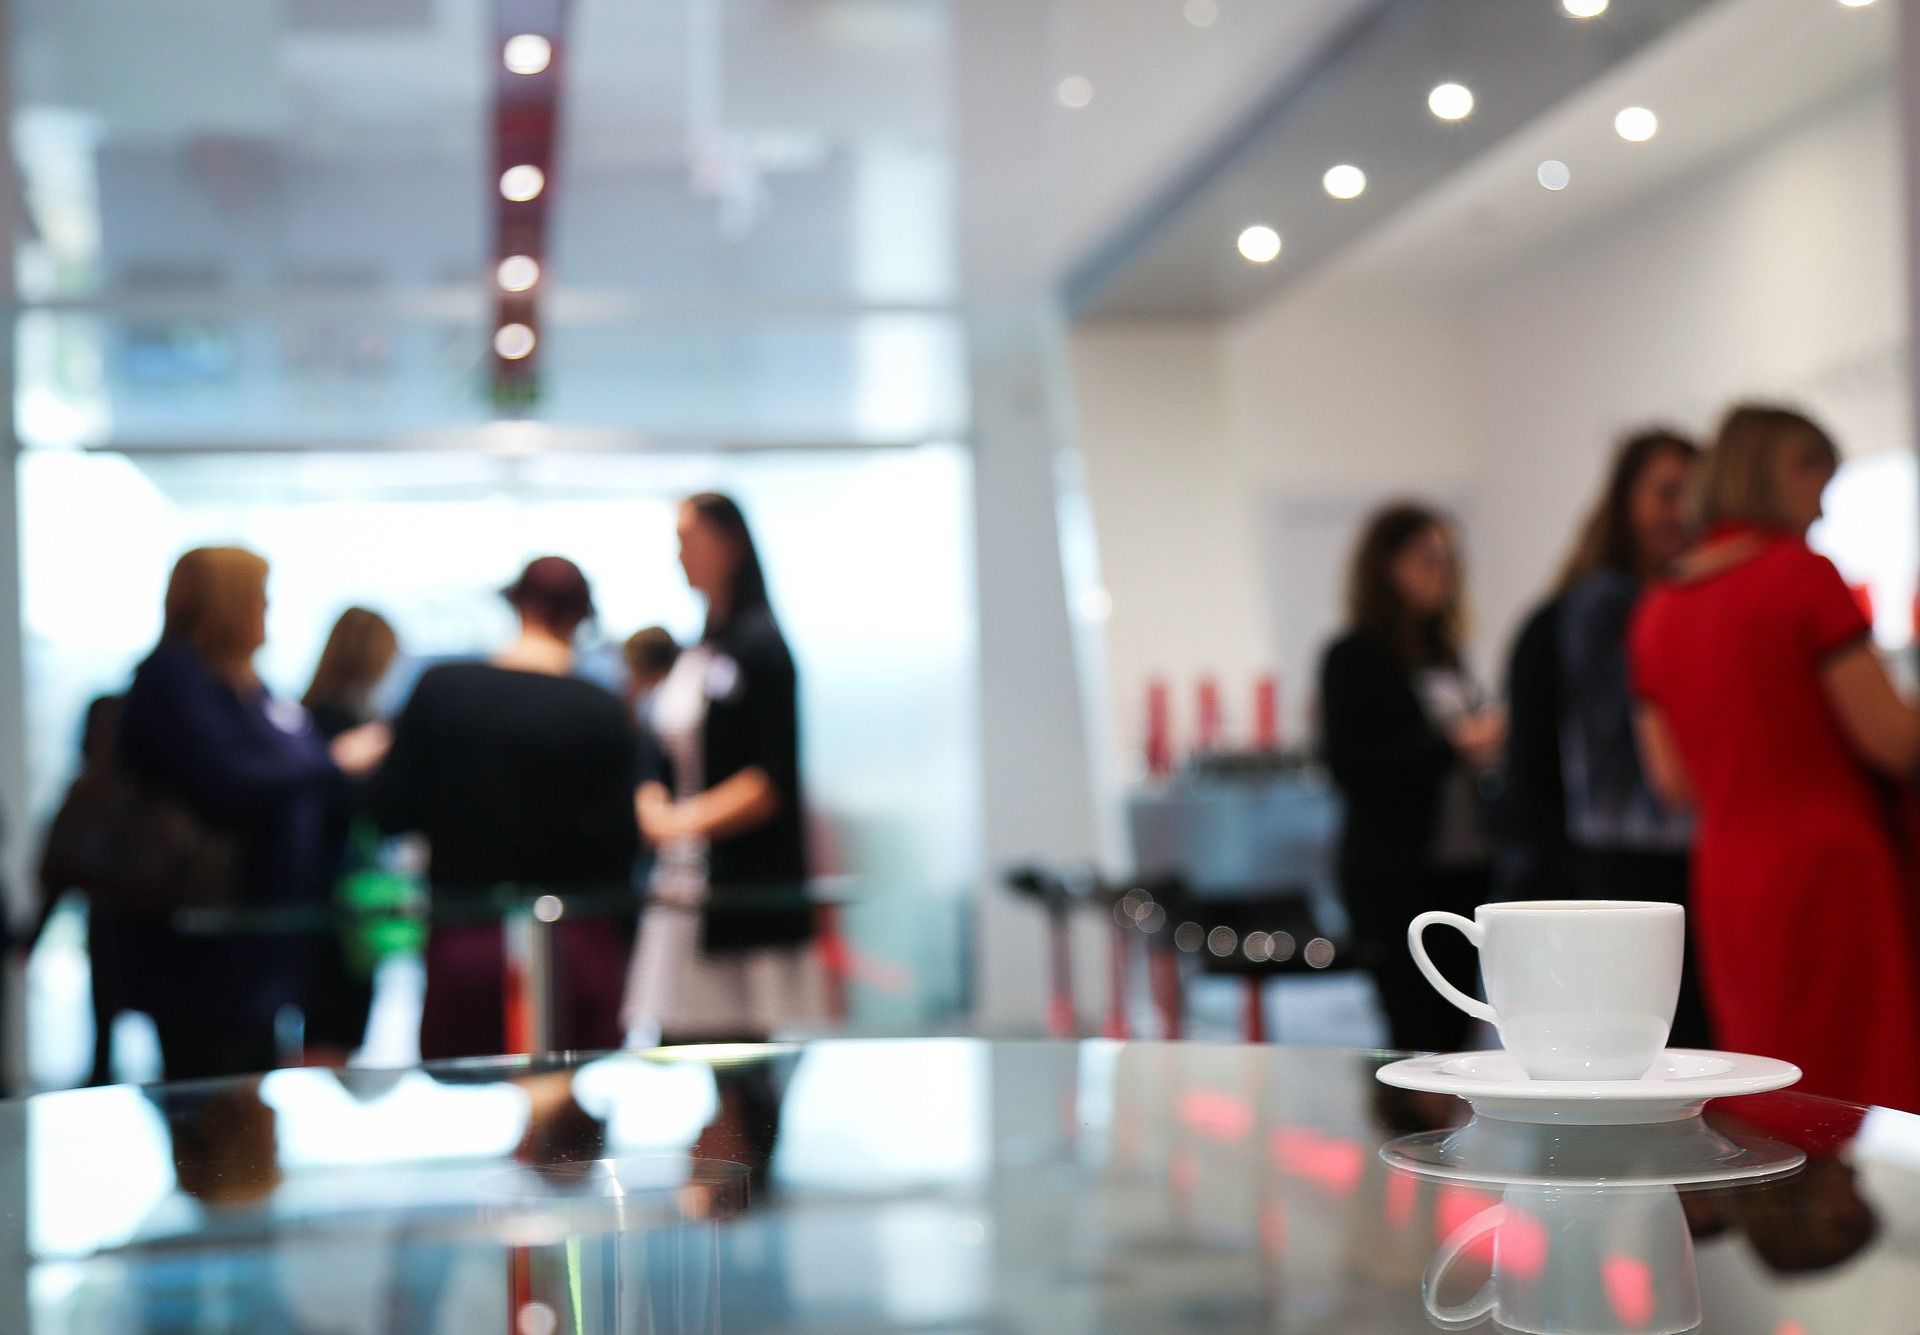 Does Business Networking Improve Your Personal Brand?